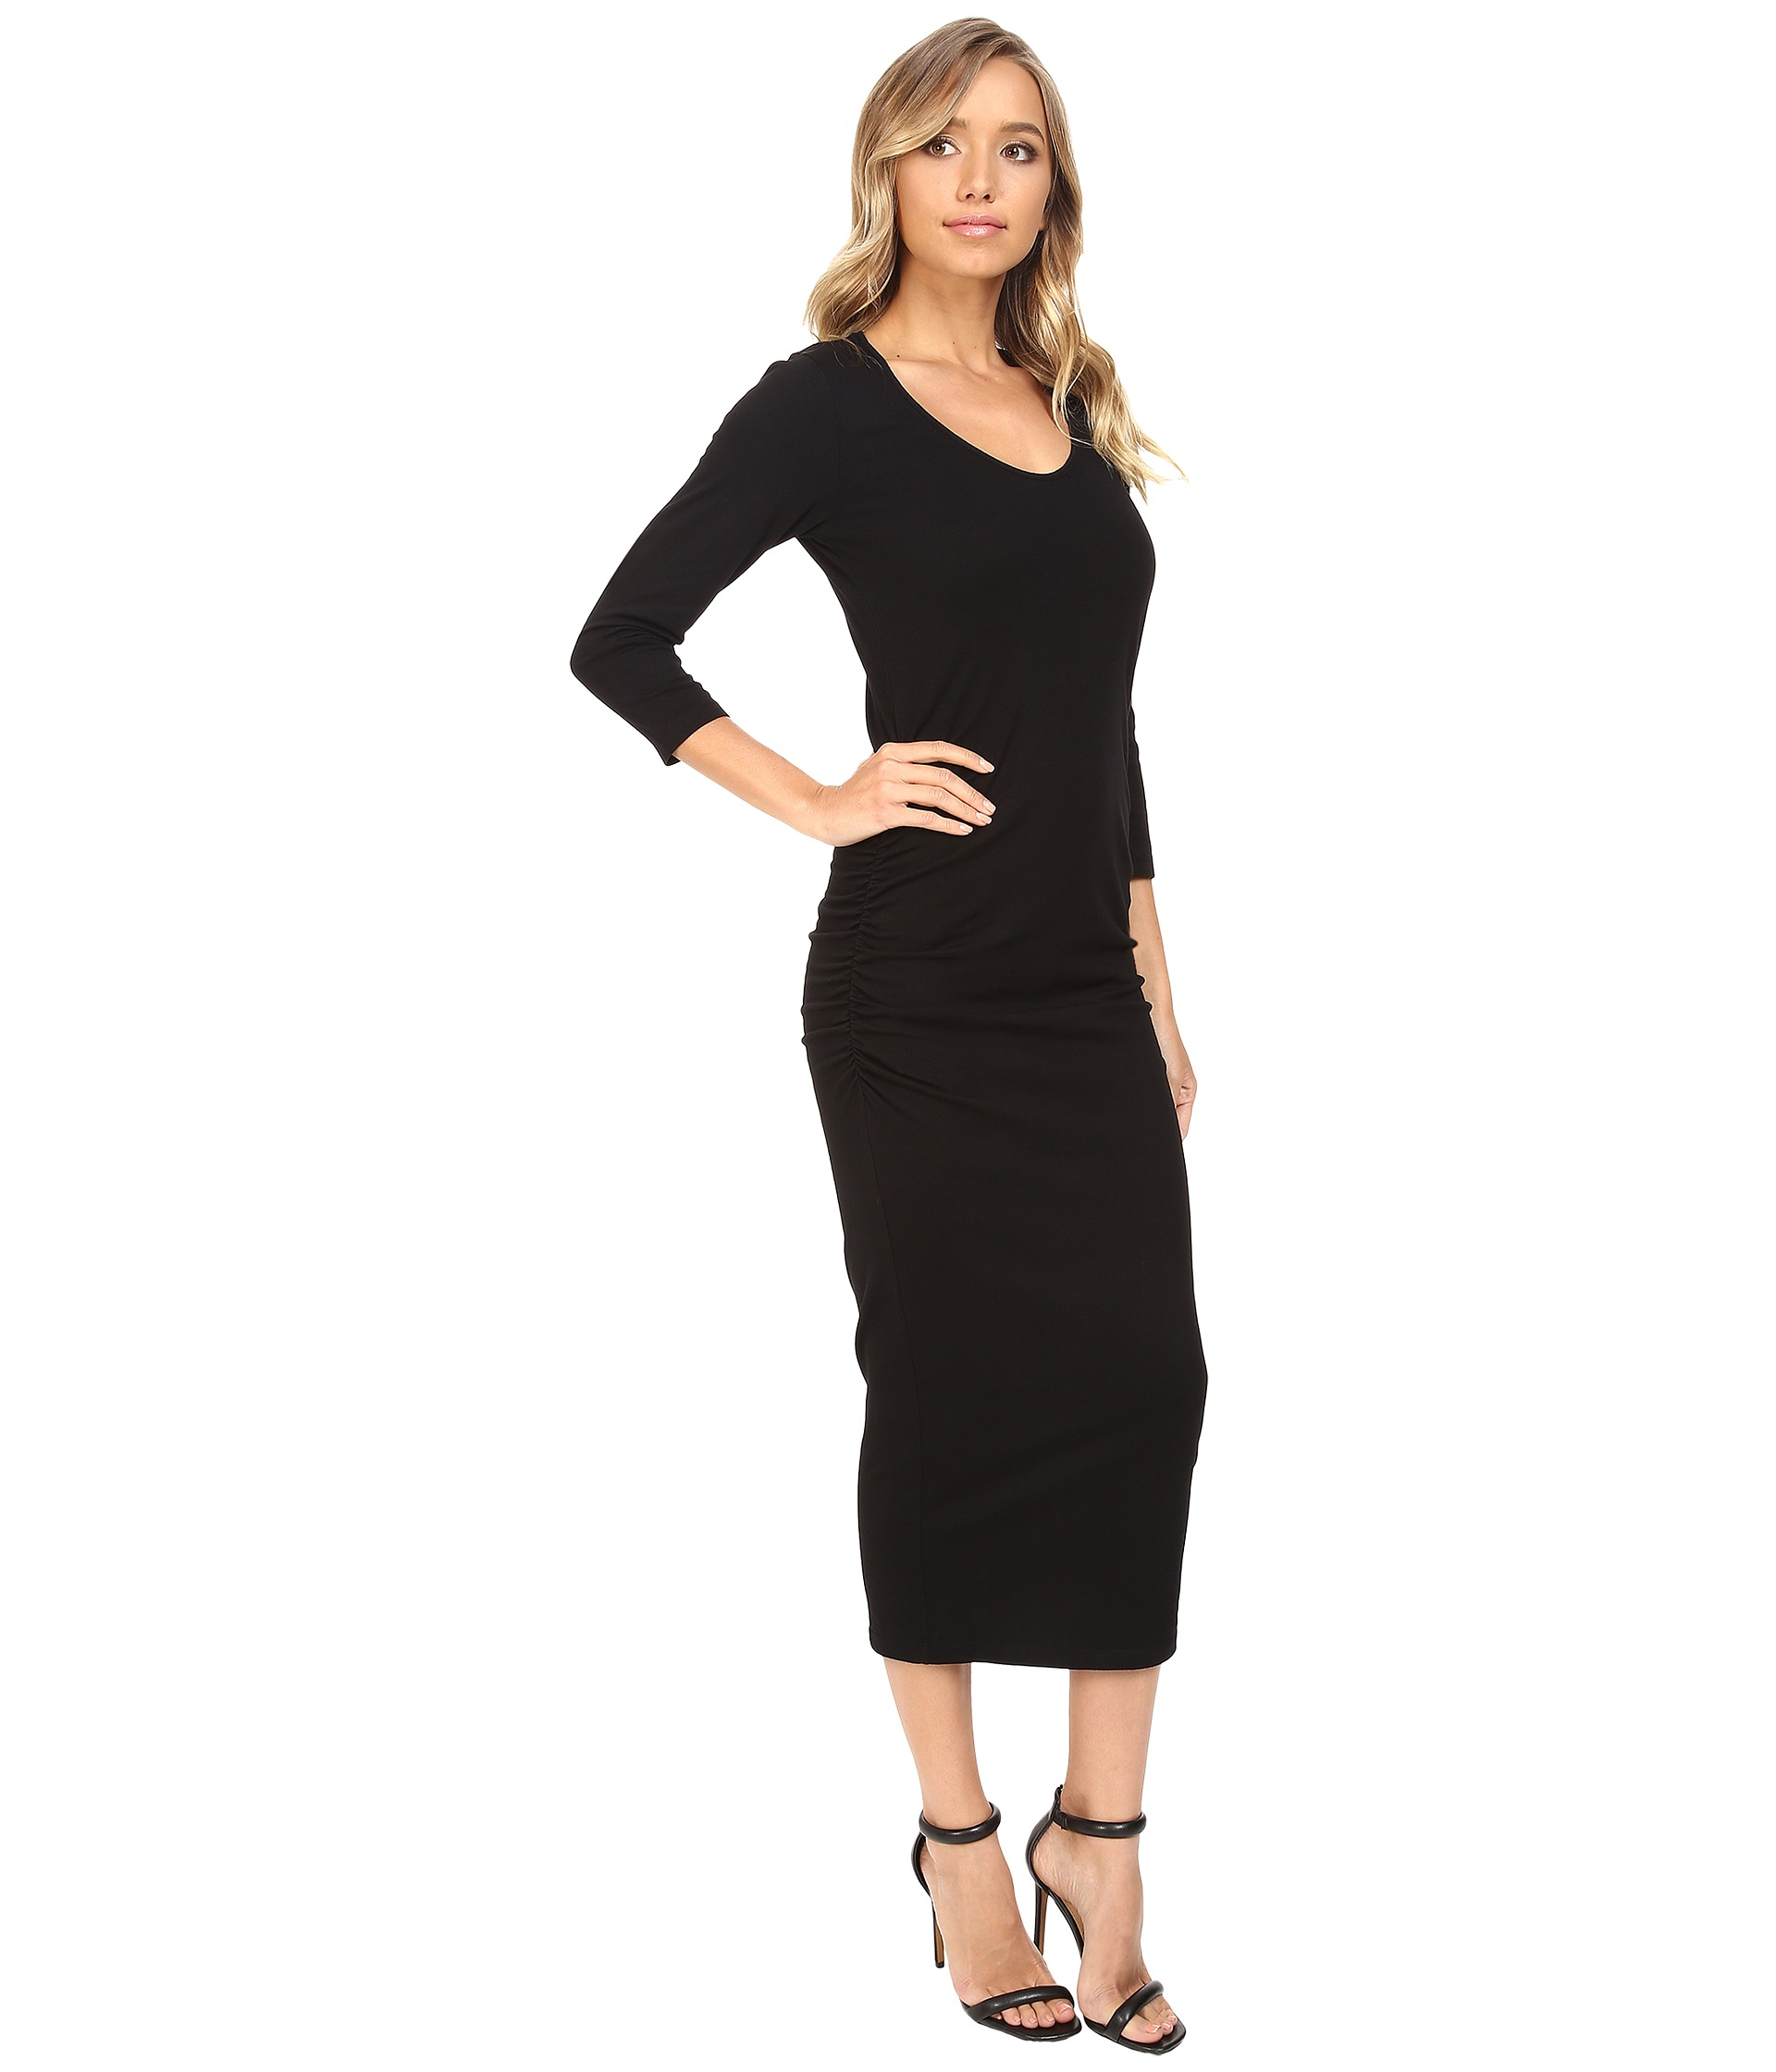 Black dress v neck 3 4 sleeves - Sorry This Video Is Unsupported On This Browser